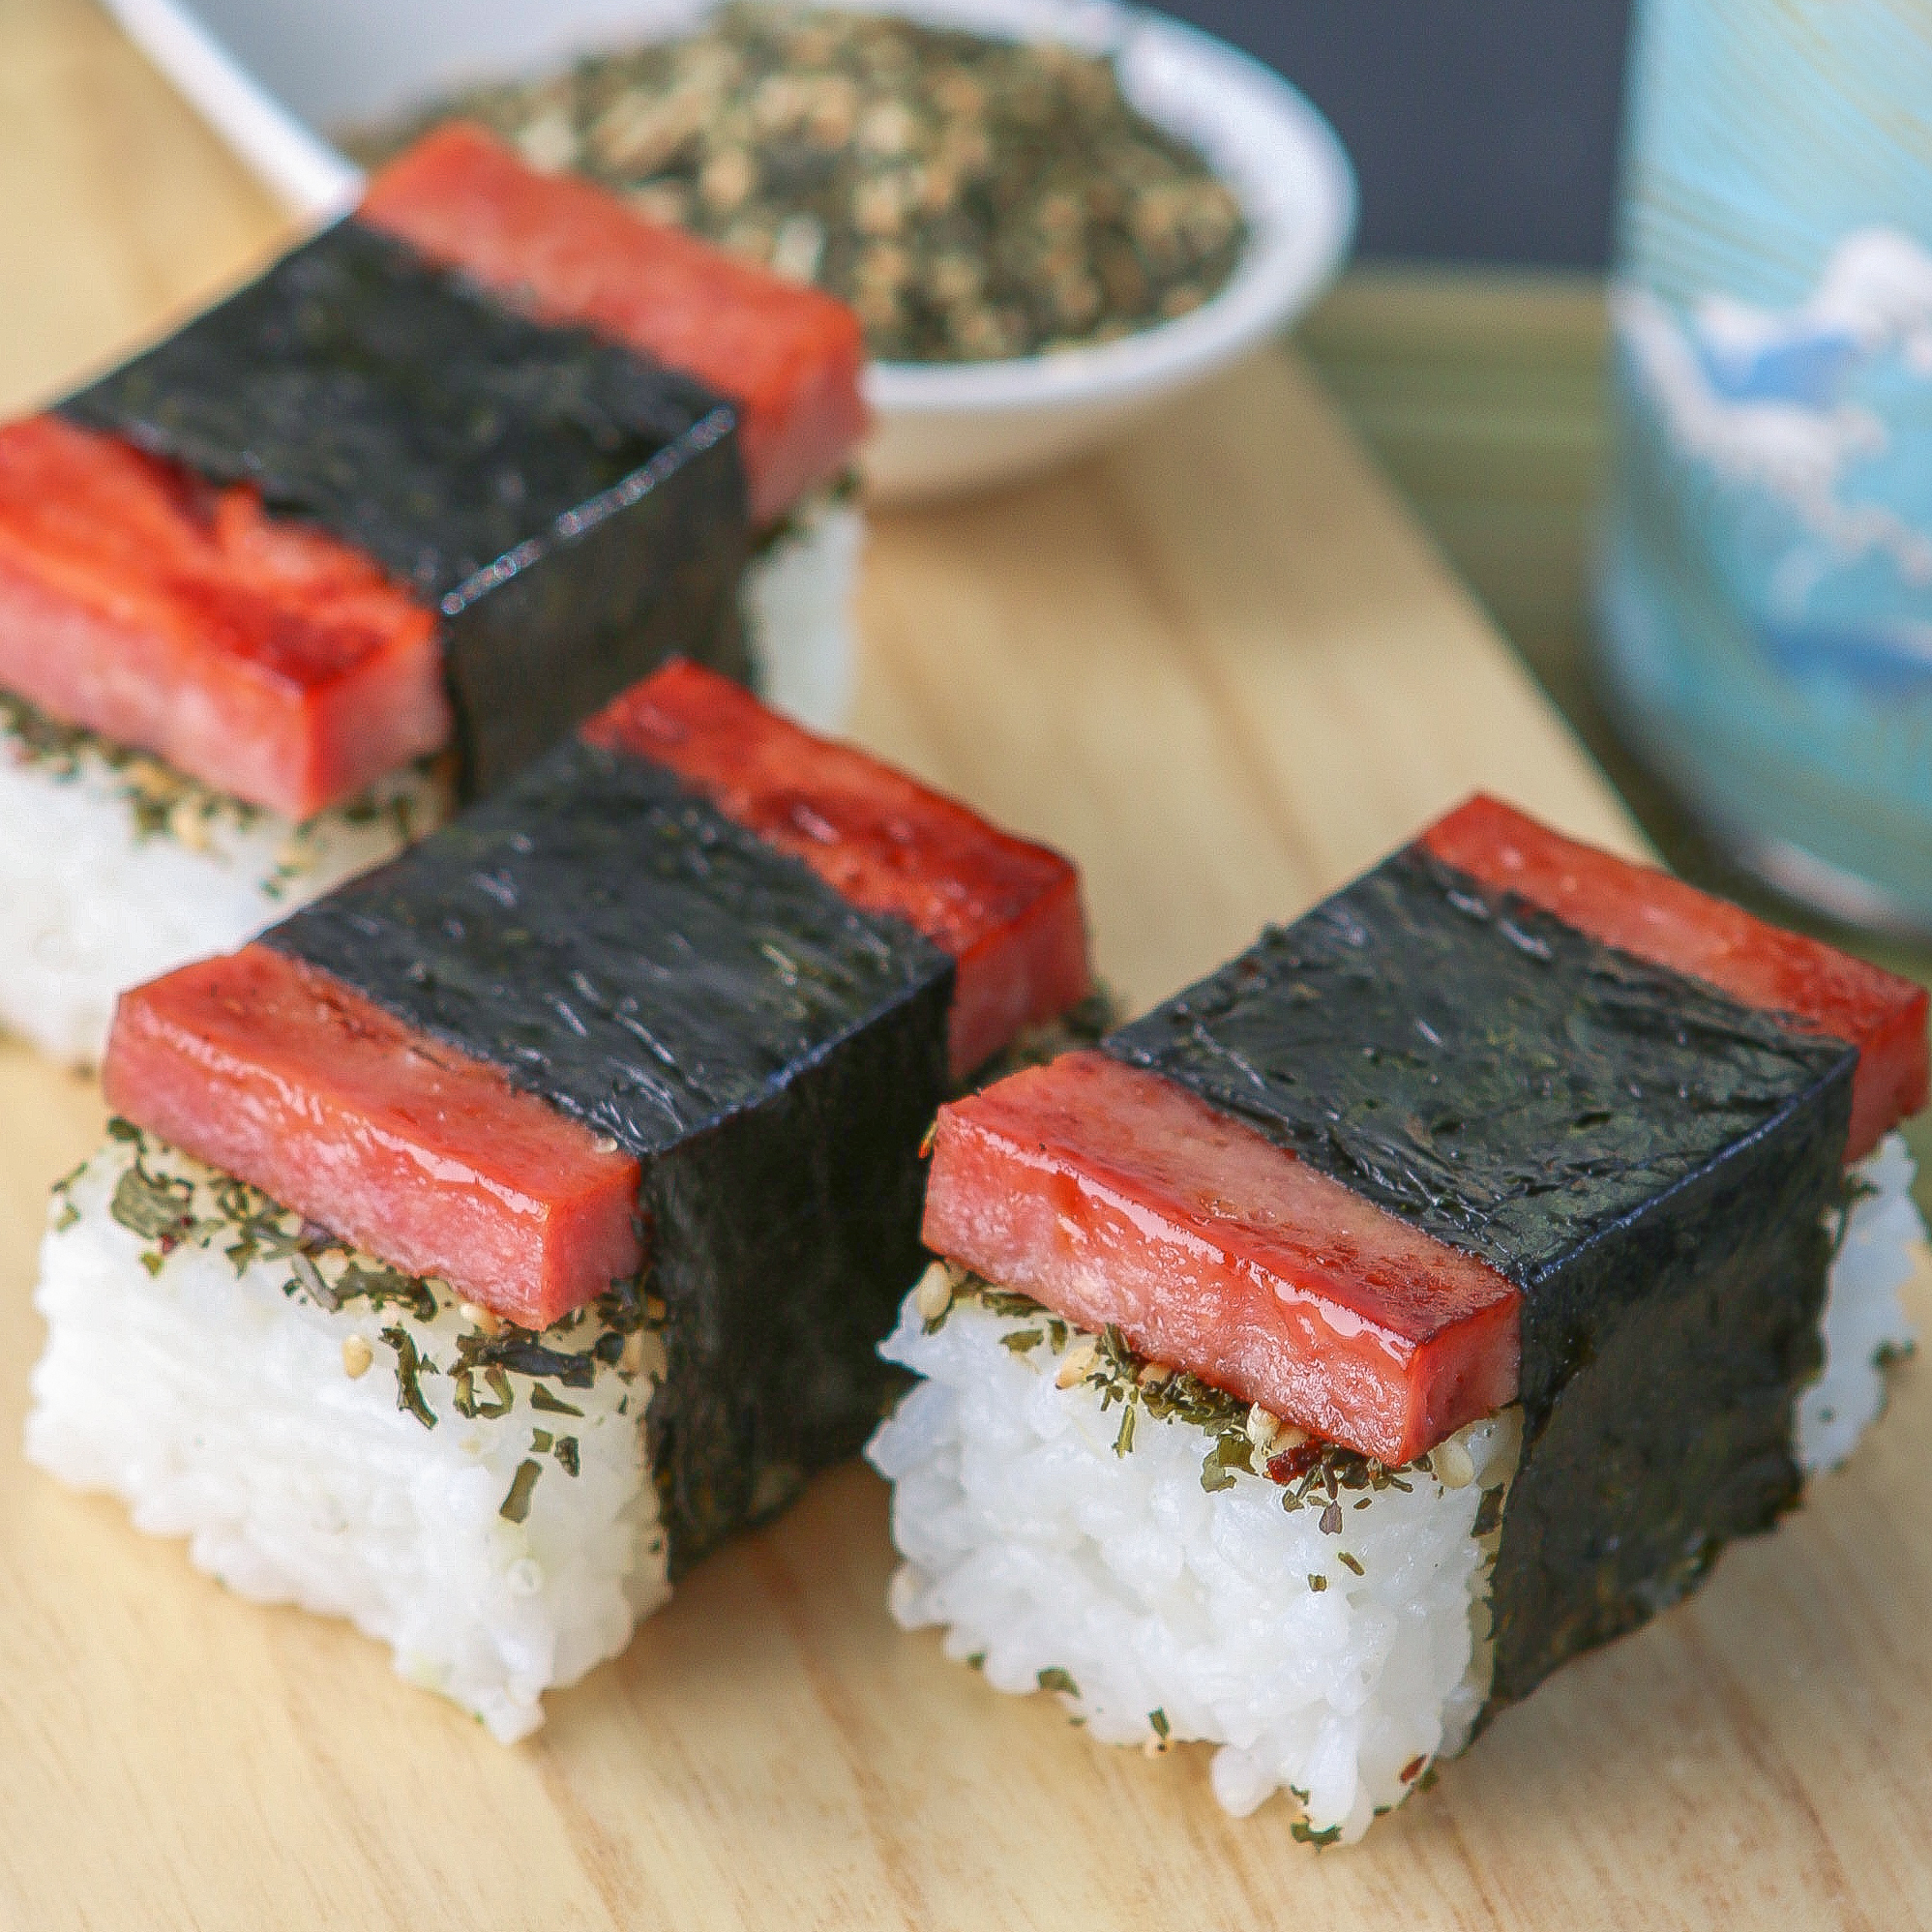 Thirsty For Tea Bite Size Spam Musubi With Green Tea Furikake